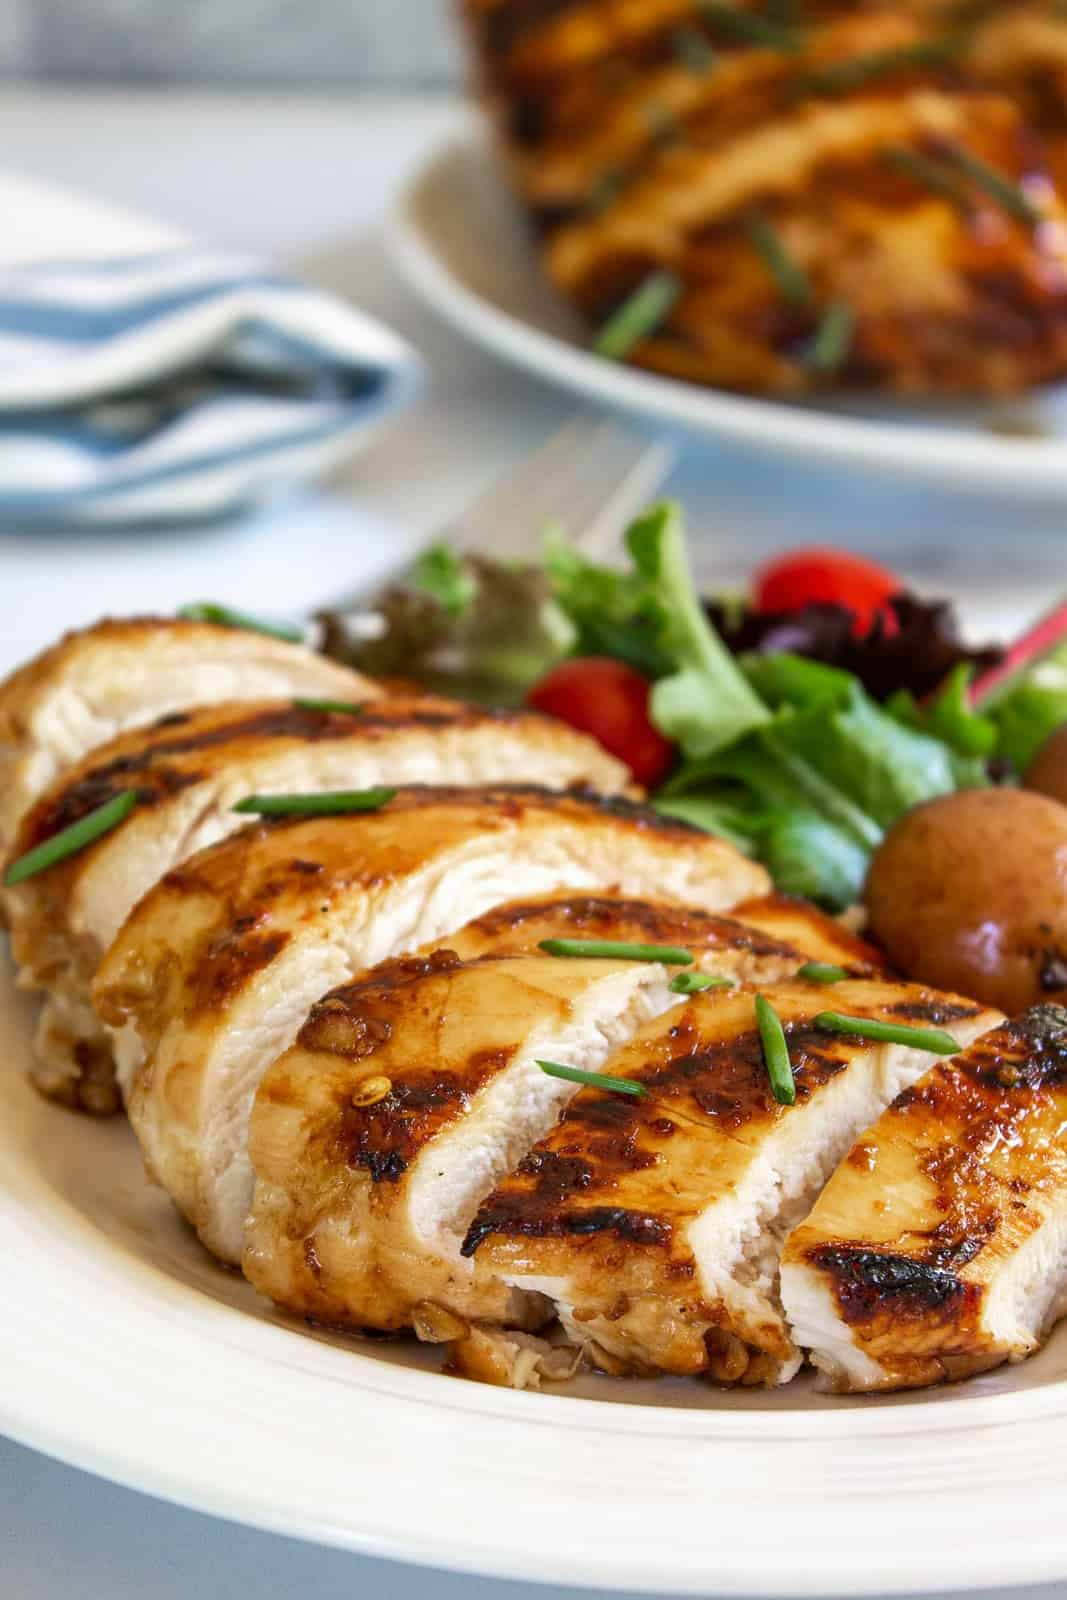 Sliced honey lemon chicken breast on a plate with a green salad.